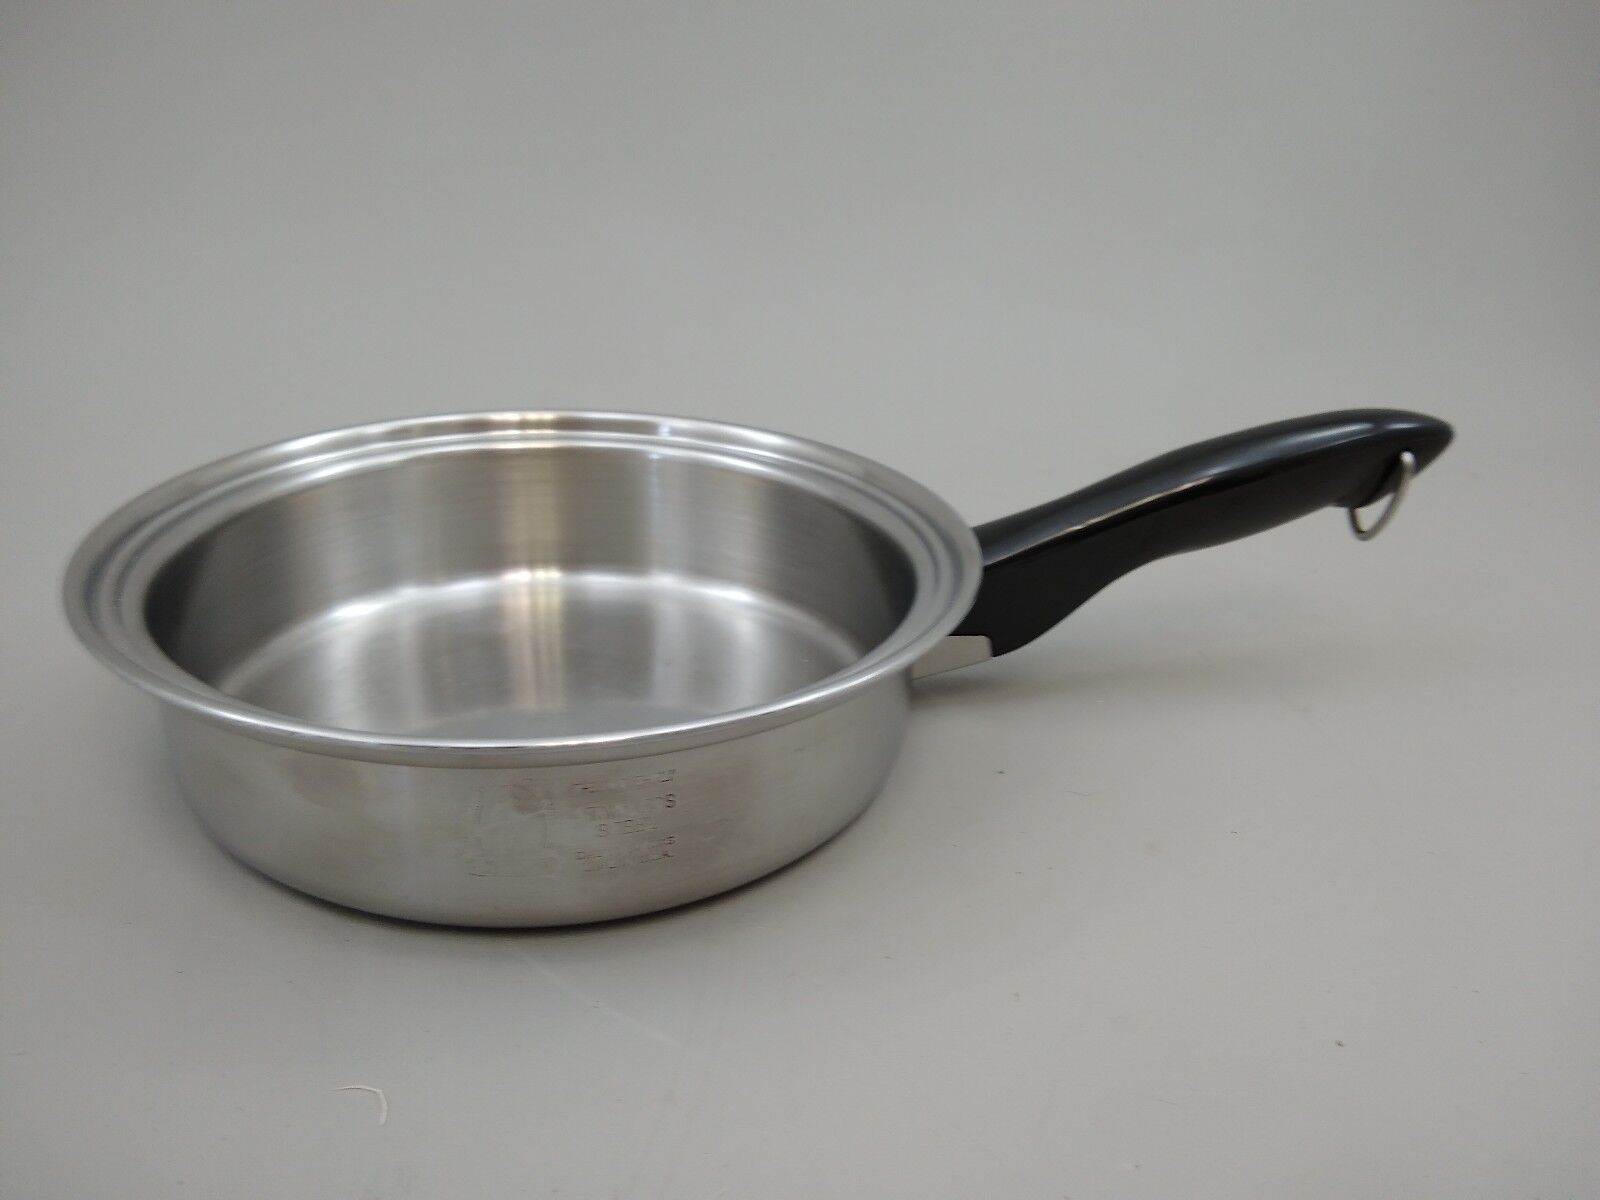 COLONIAL WARE Guarding Your Health Cookware 11 Inch Skillet - NO LID